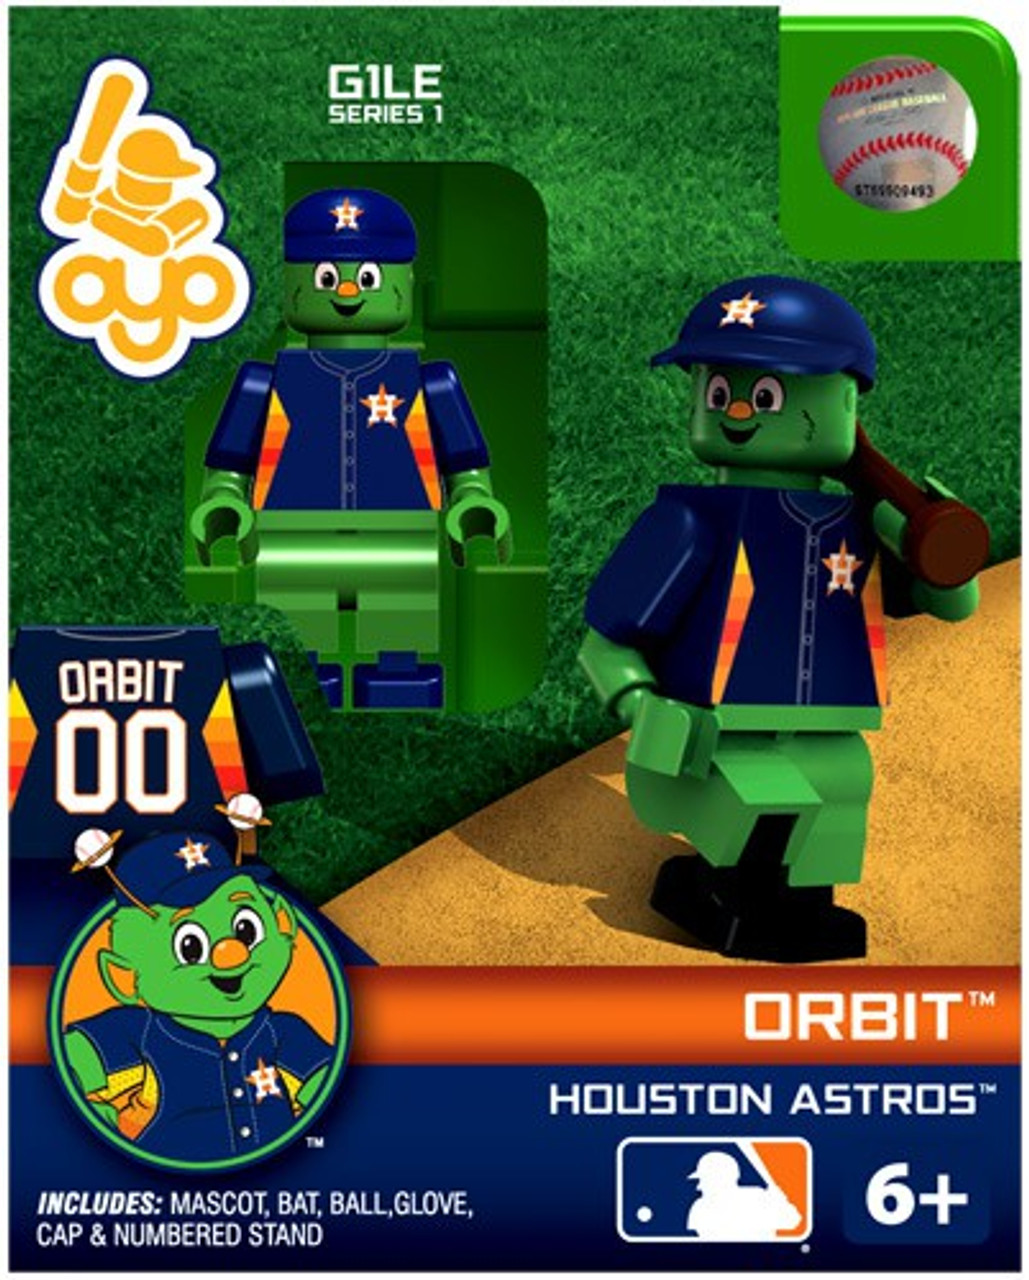 Orbit The Mascot In MLB Coloring Page : Color Luna | 1280x1029